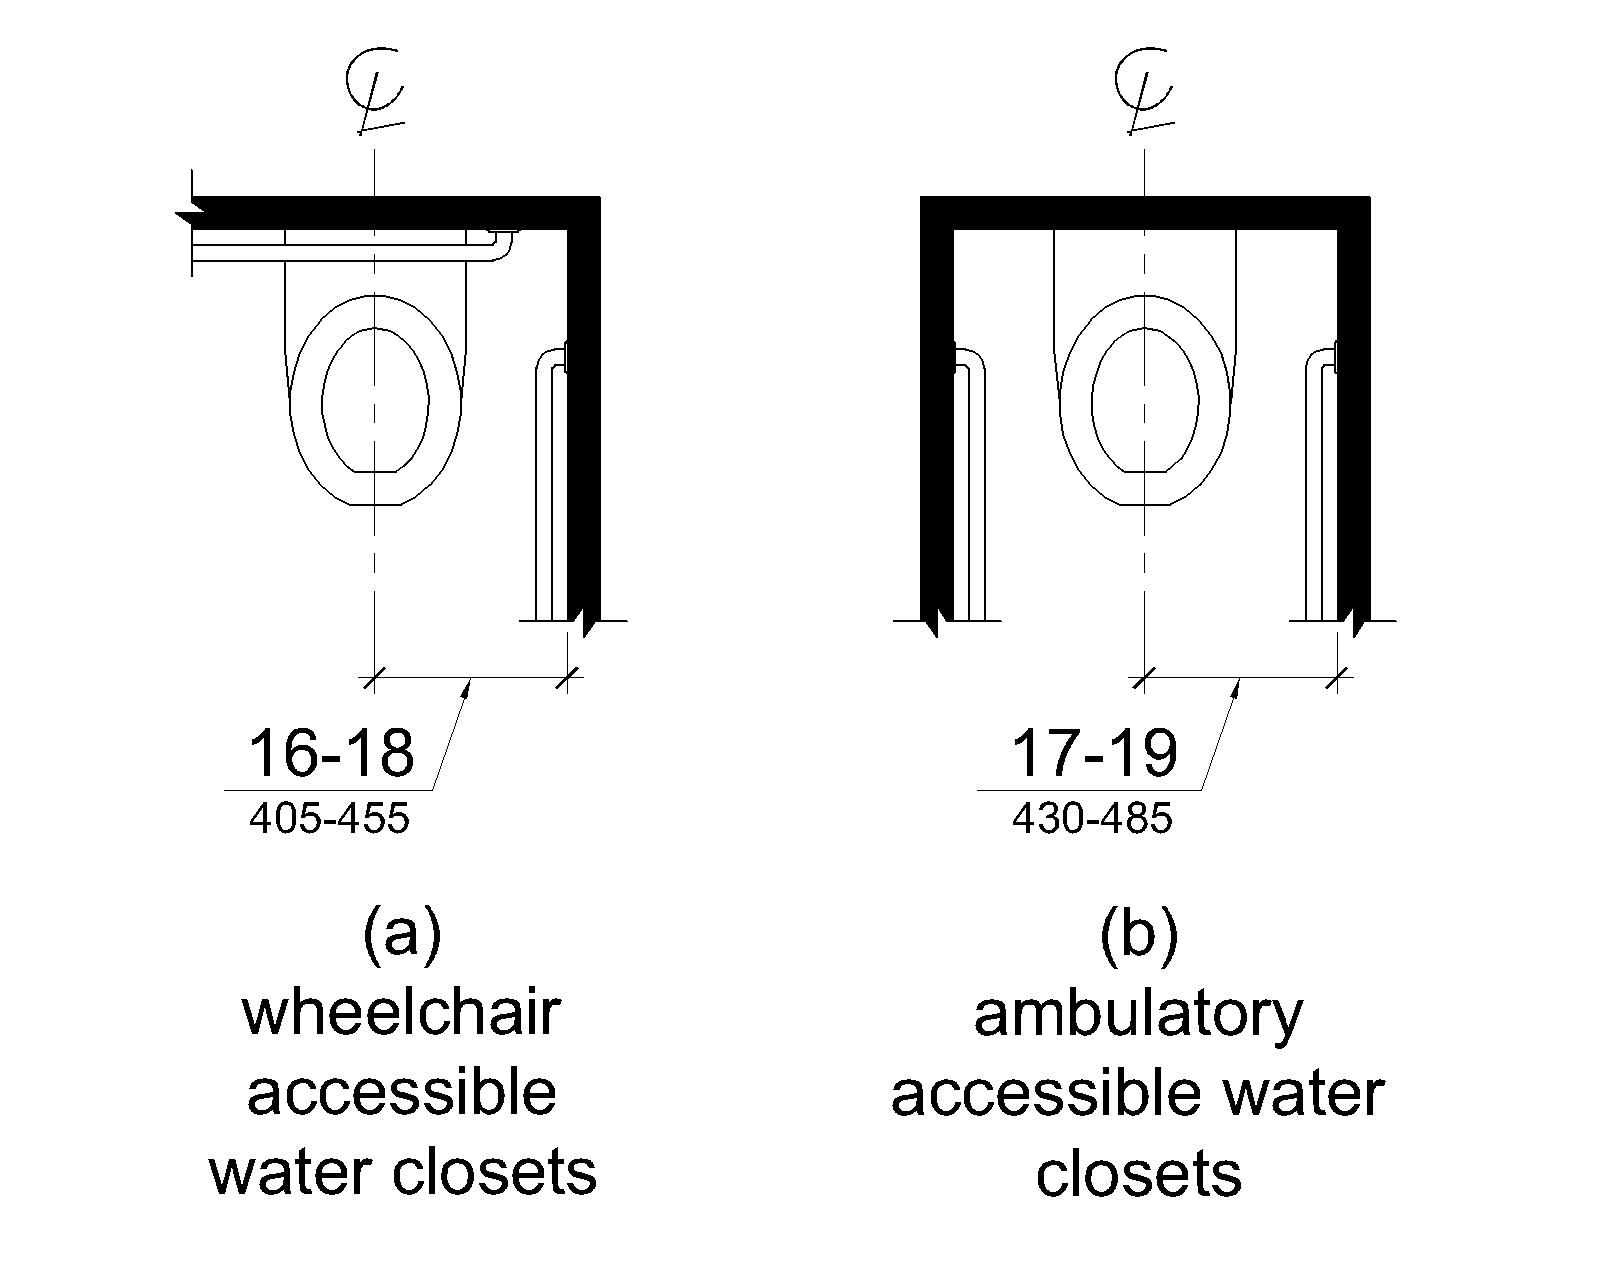 Figure V604.2 Water Closet Location. Figure (a) shows a wheelchair accessible water closet, with space on one side, and figure (b) shows an ambulatory accessible water closet, with stall walls and grab bars on both sides. The water closet centerline is shown to be 16 to 18 inches (405 to 455 mm) from the side wall.